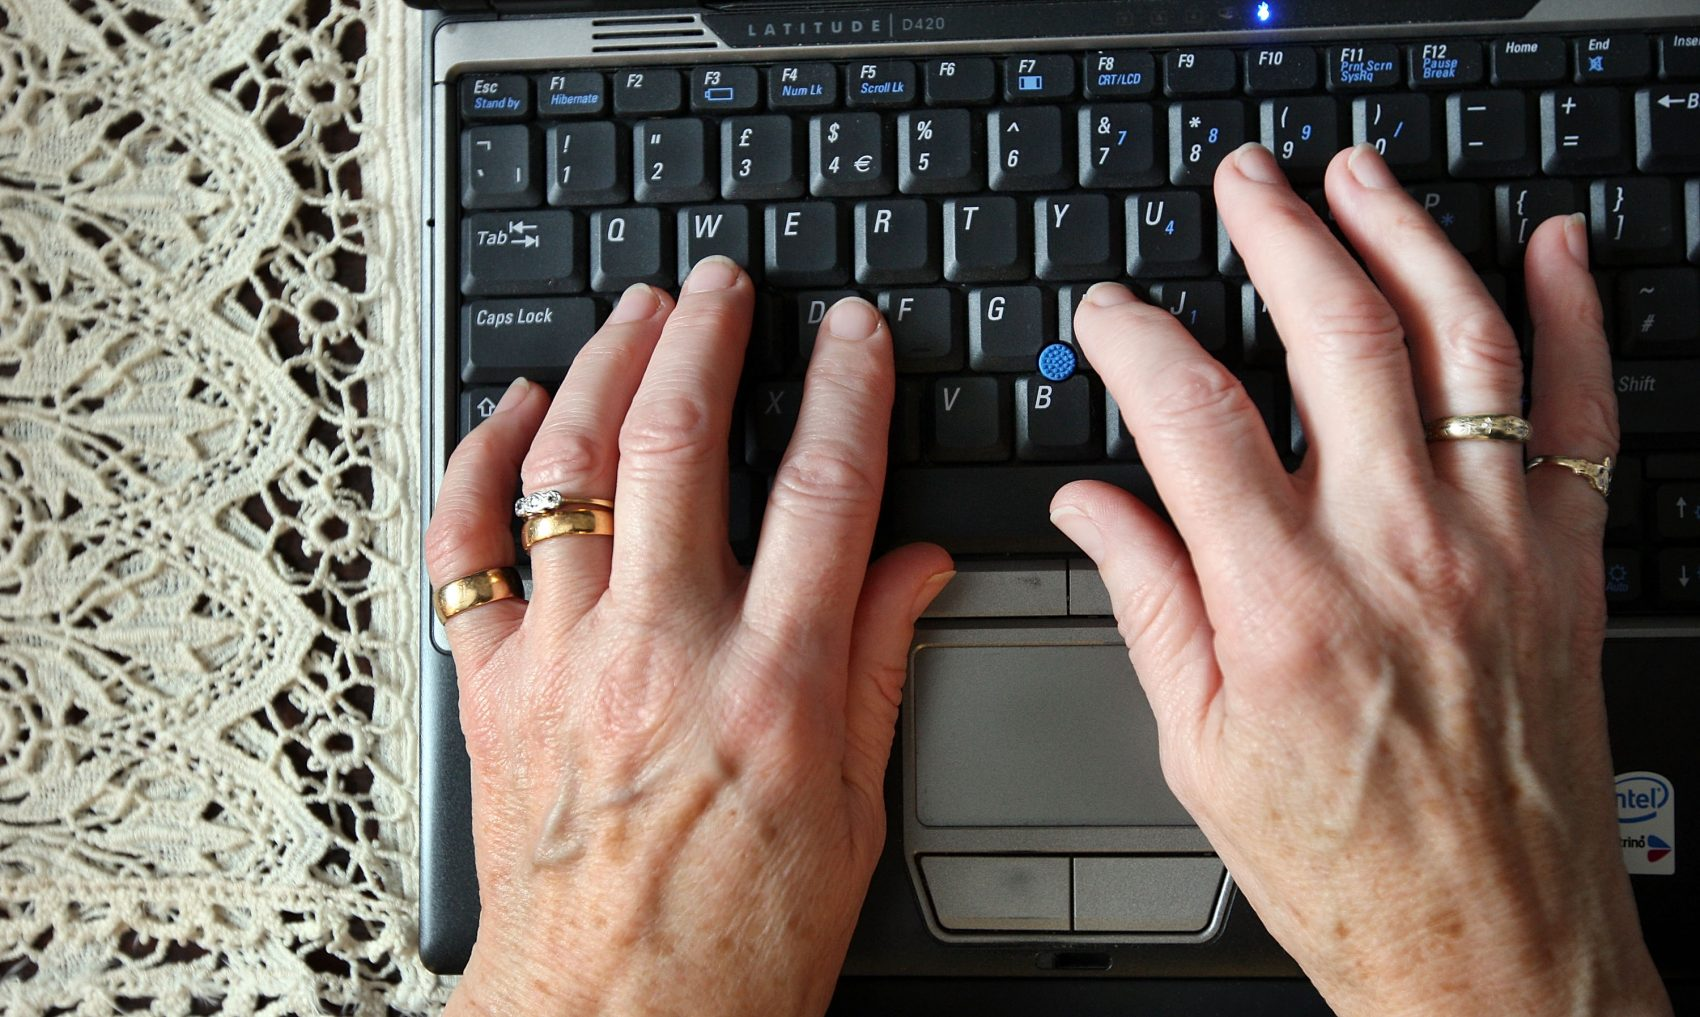 The elder orphans Facebook group has gained 5,000 users since it began last year. Pictured: Mary Devlin uses a laptop computer on Nov. 1, 2007 in London. (Peter Macdiarmid/Getty Images)